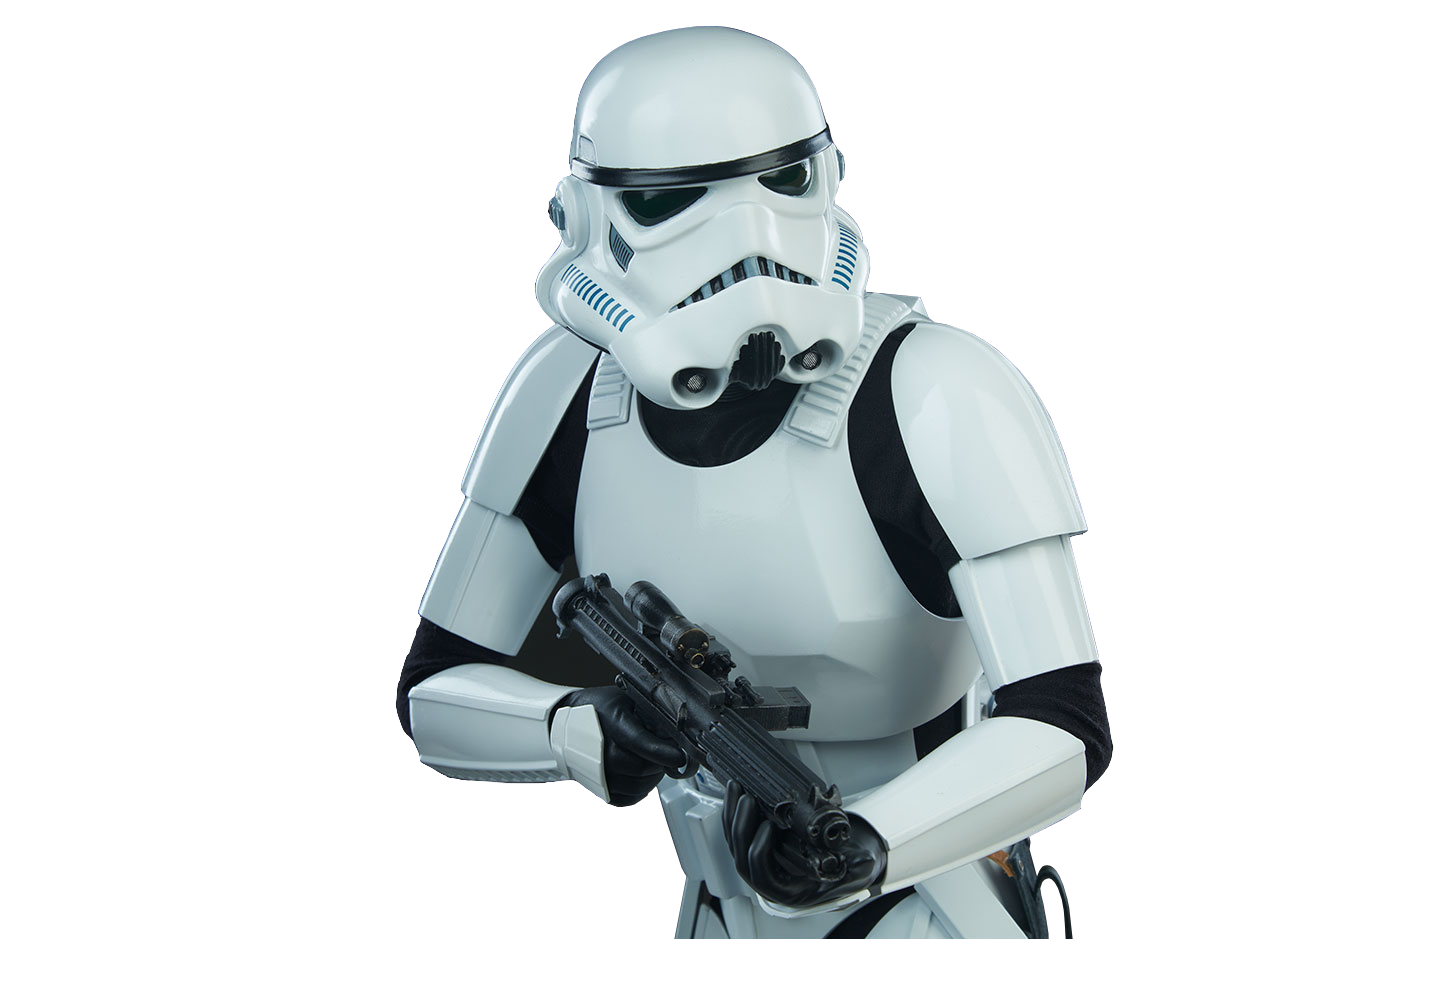 sideshow-star-wars-a-new-hope-stormtrooper-premium-format-figure-toyslife